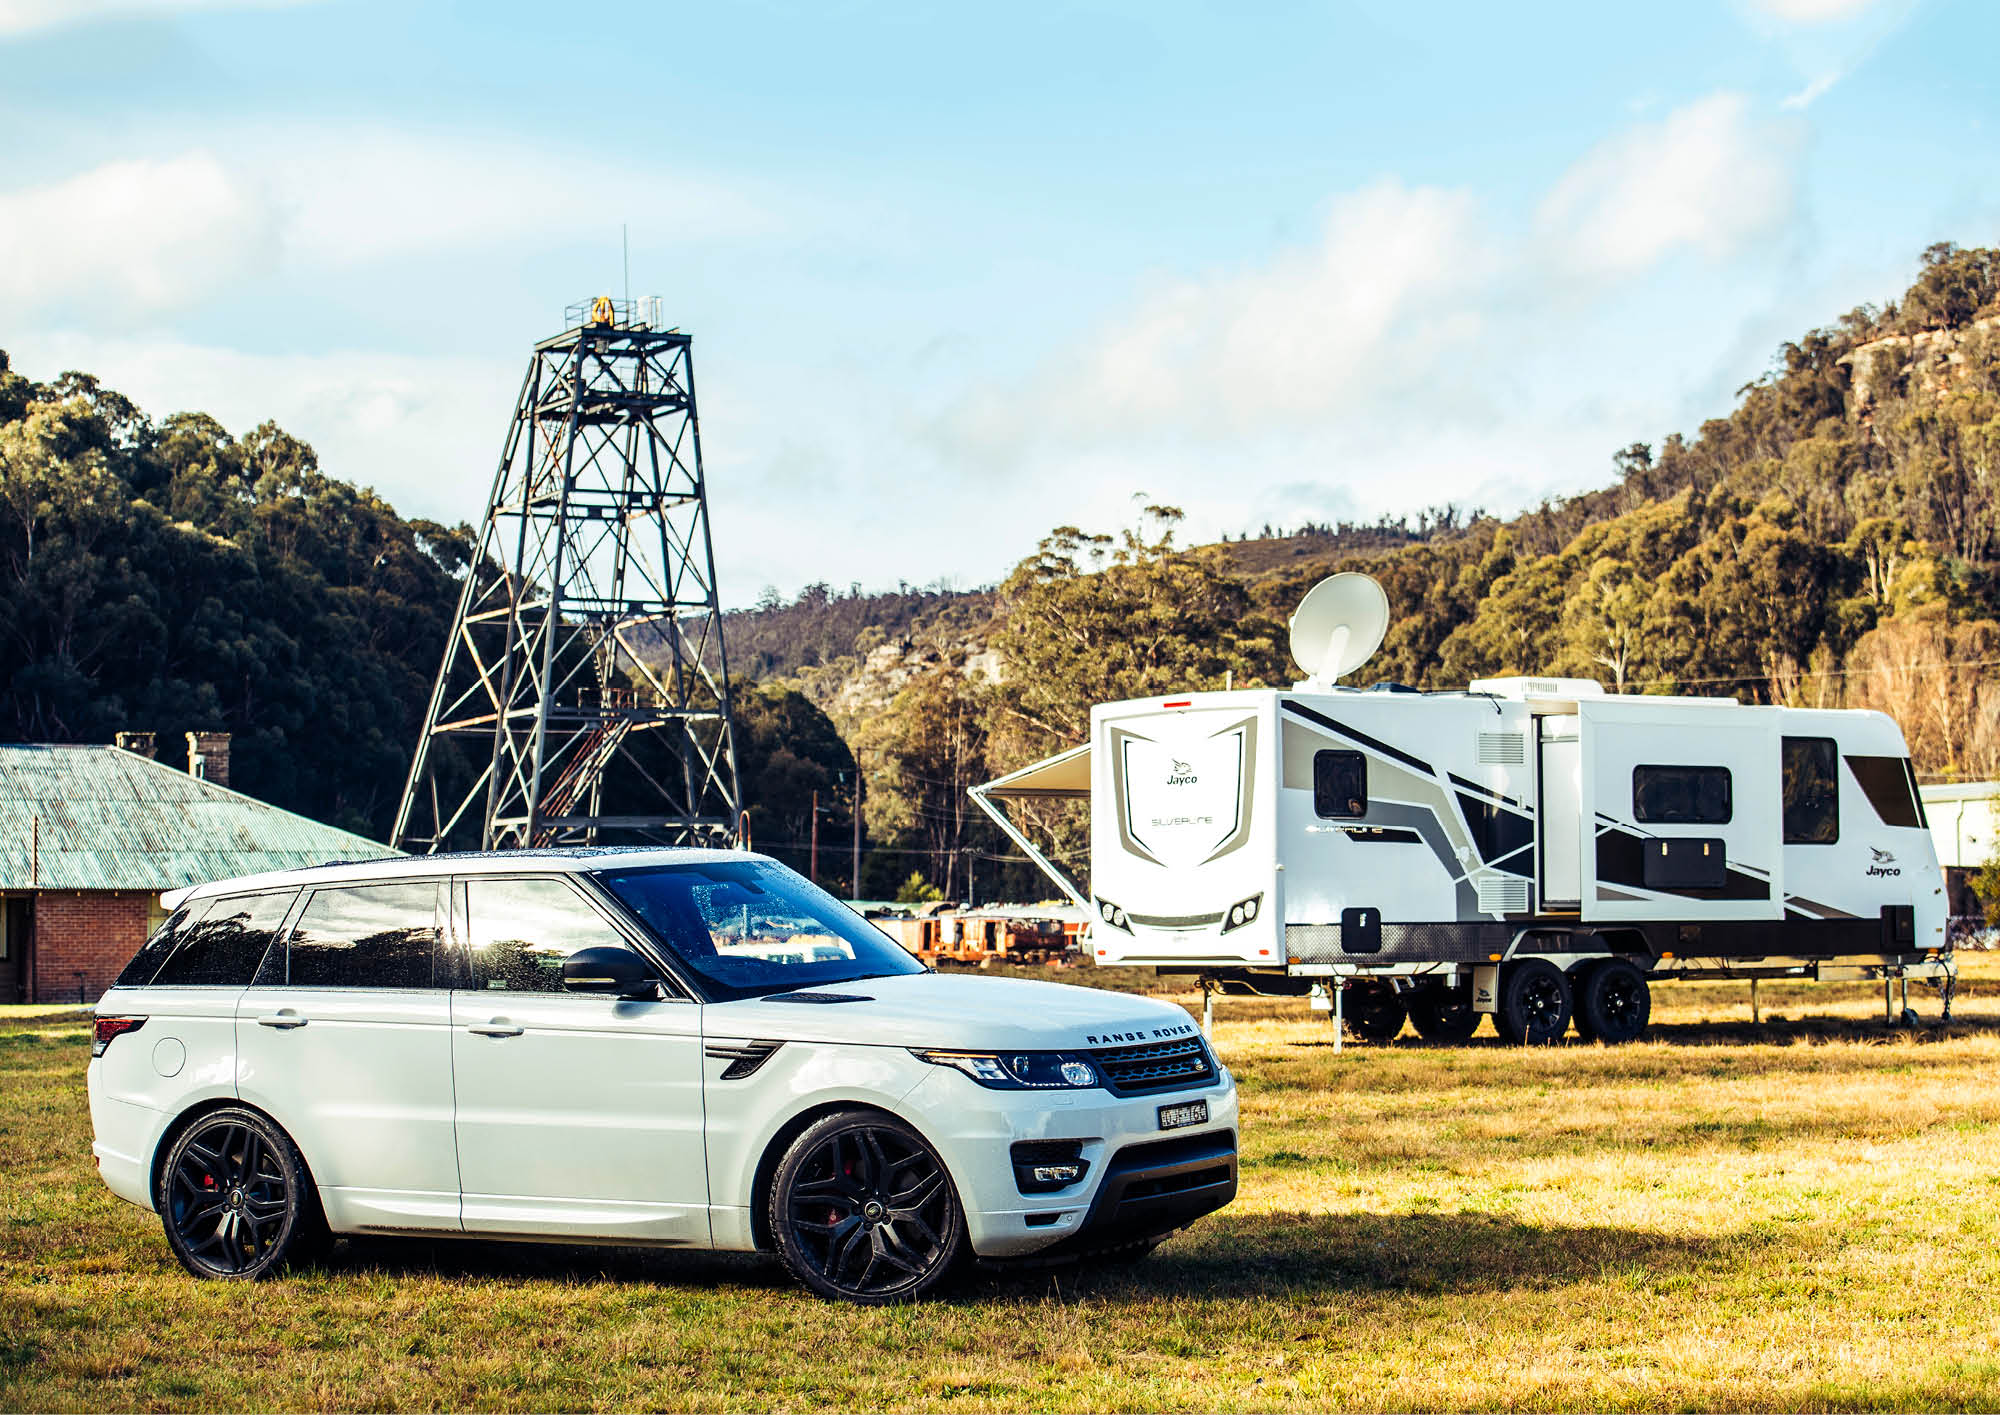 Jayco Outback meets Range Rover Sport